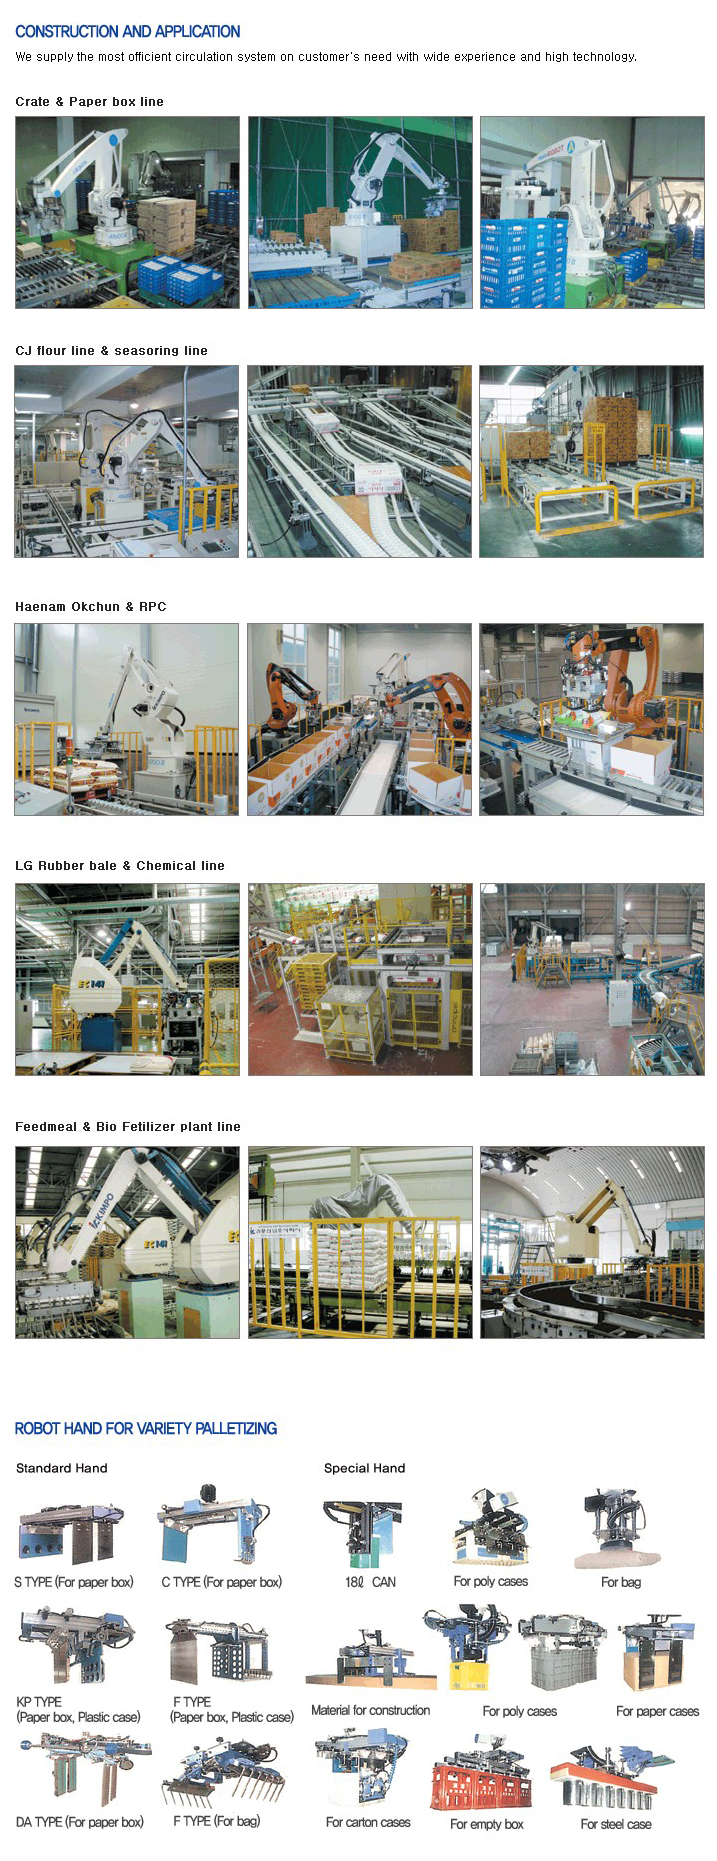 KIMPO BNS Construction and Application